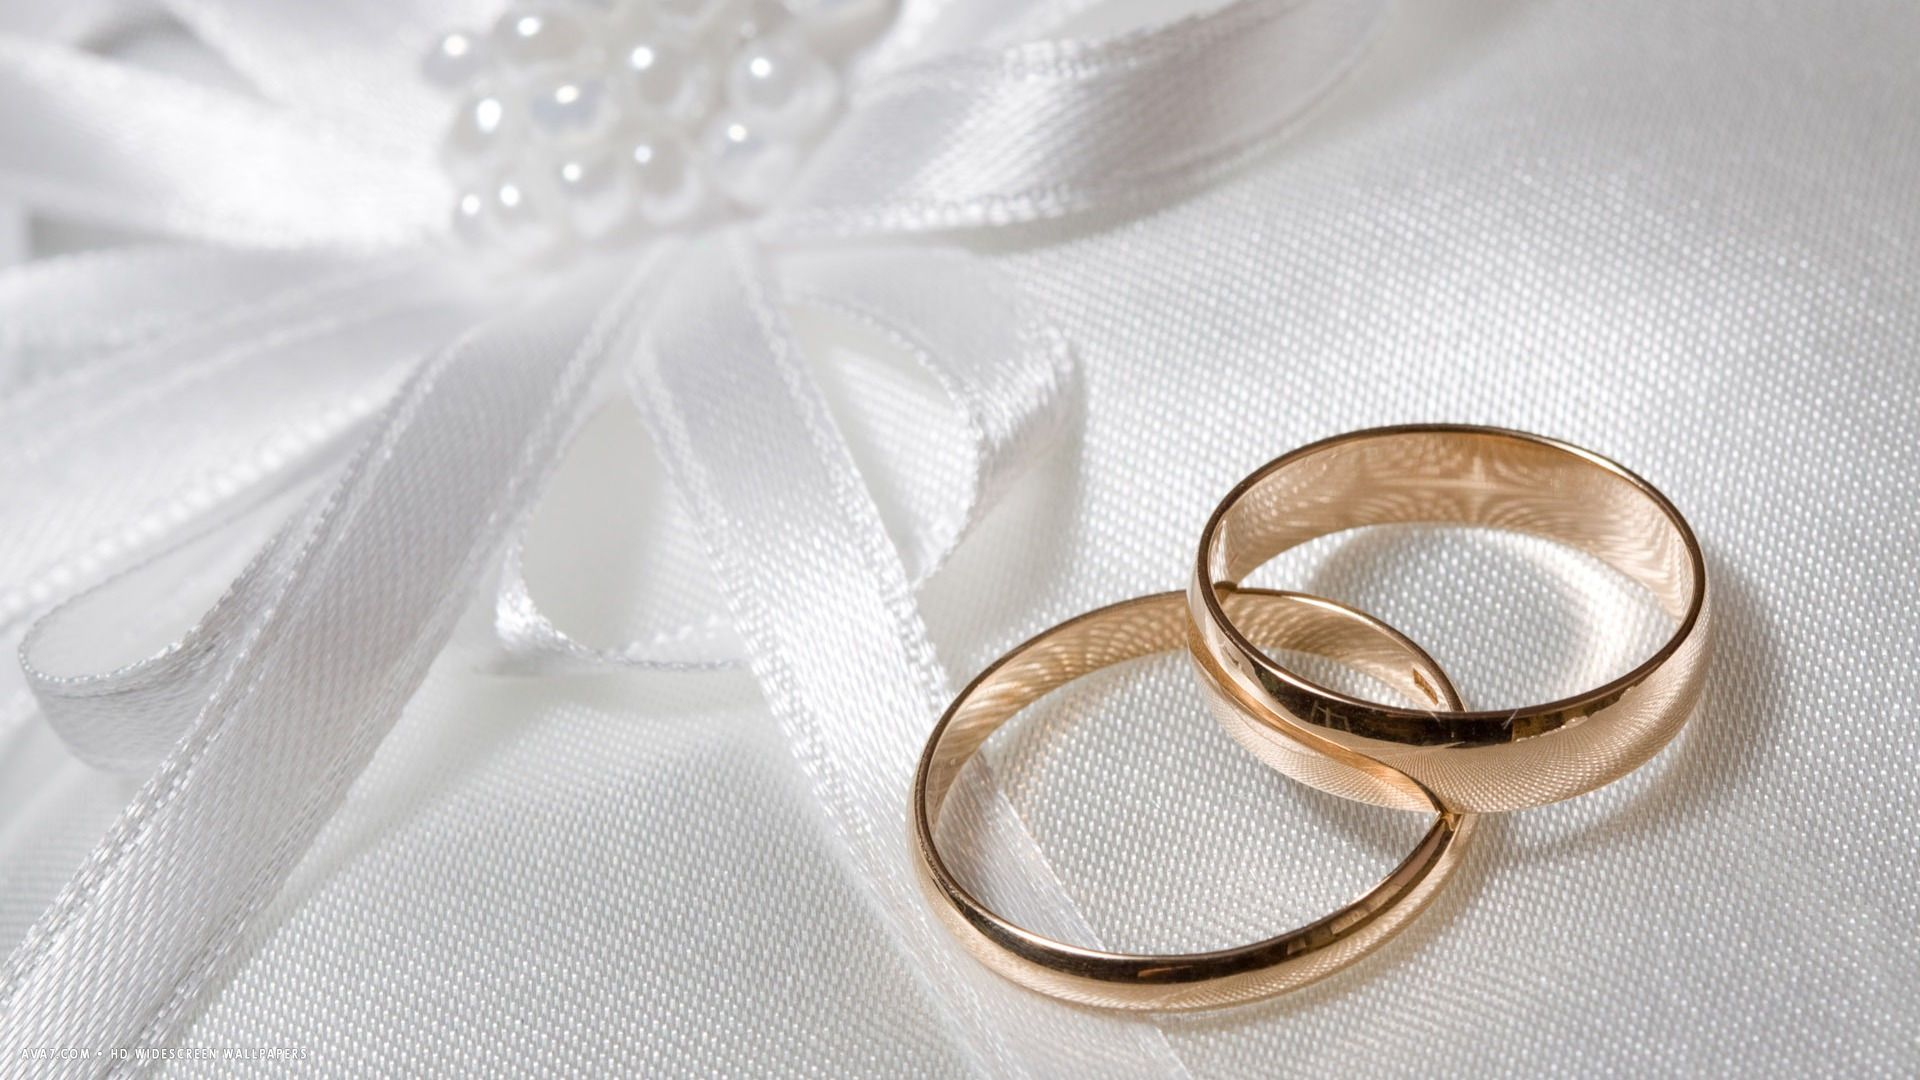 1920x1080 wedding two rings gold white marriage hd widescreen ...